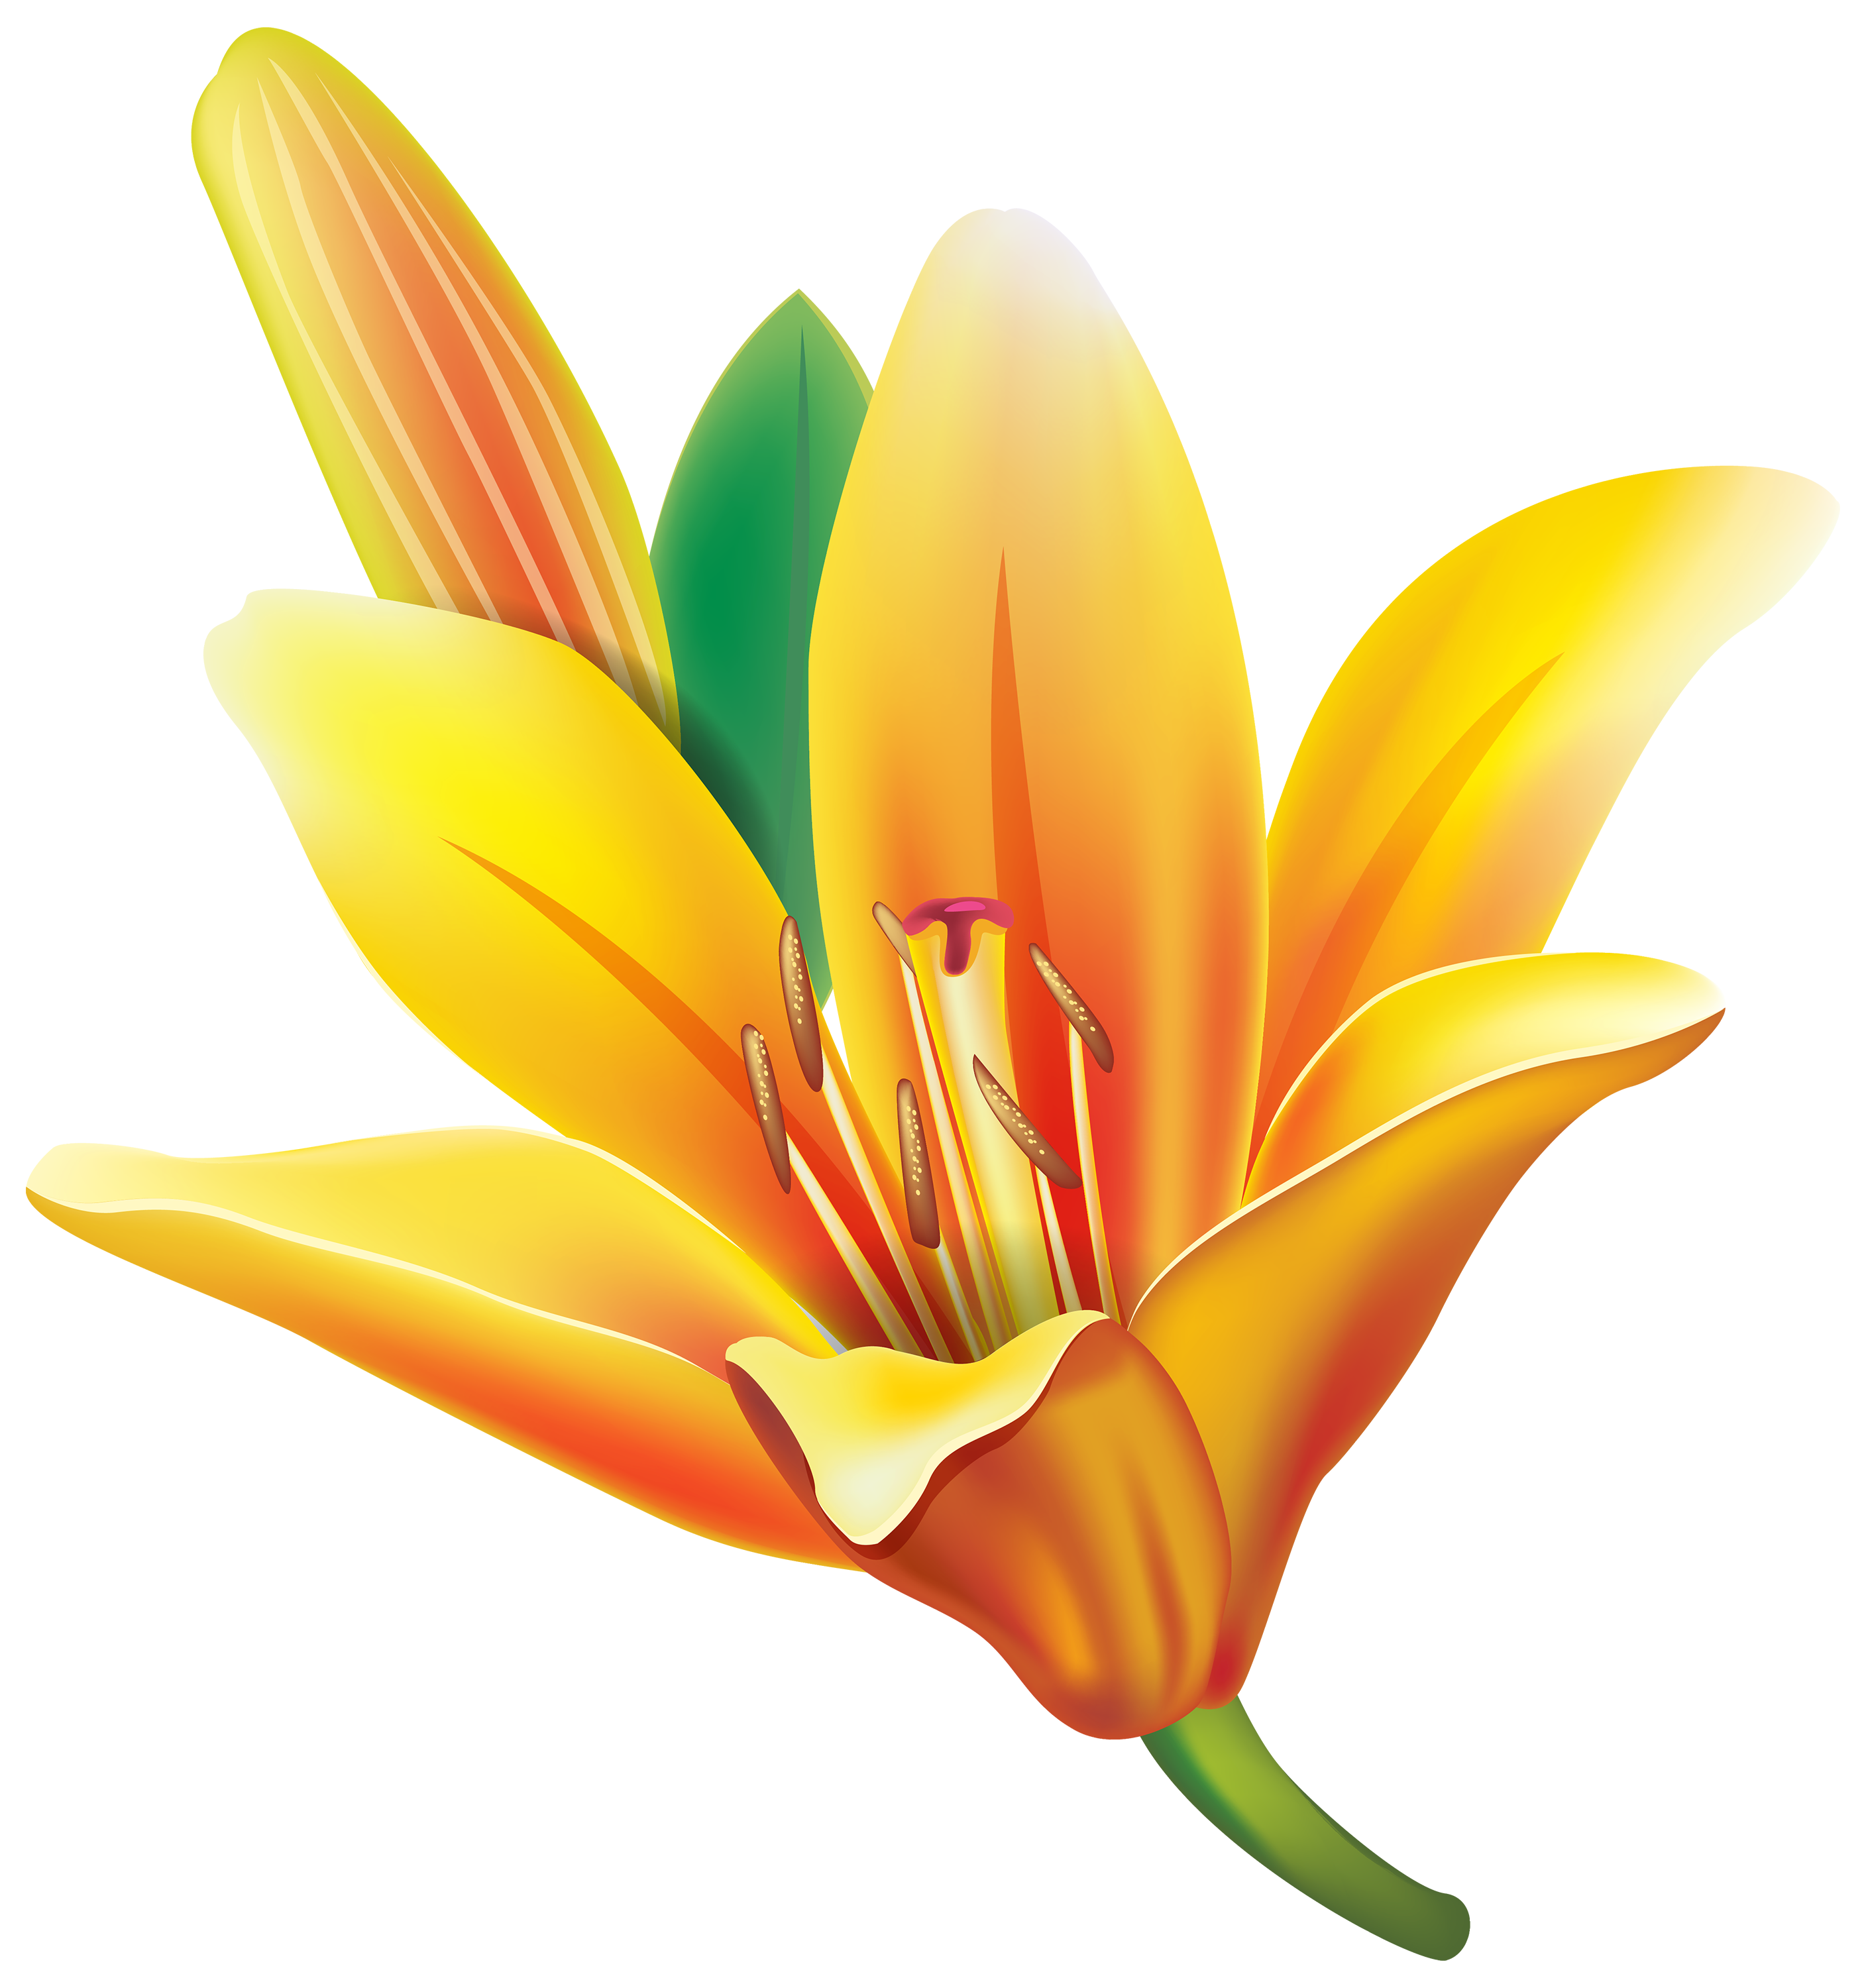 Floral clipart lily Lily Yellow El Flower Lily